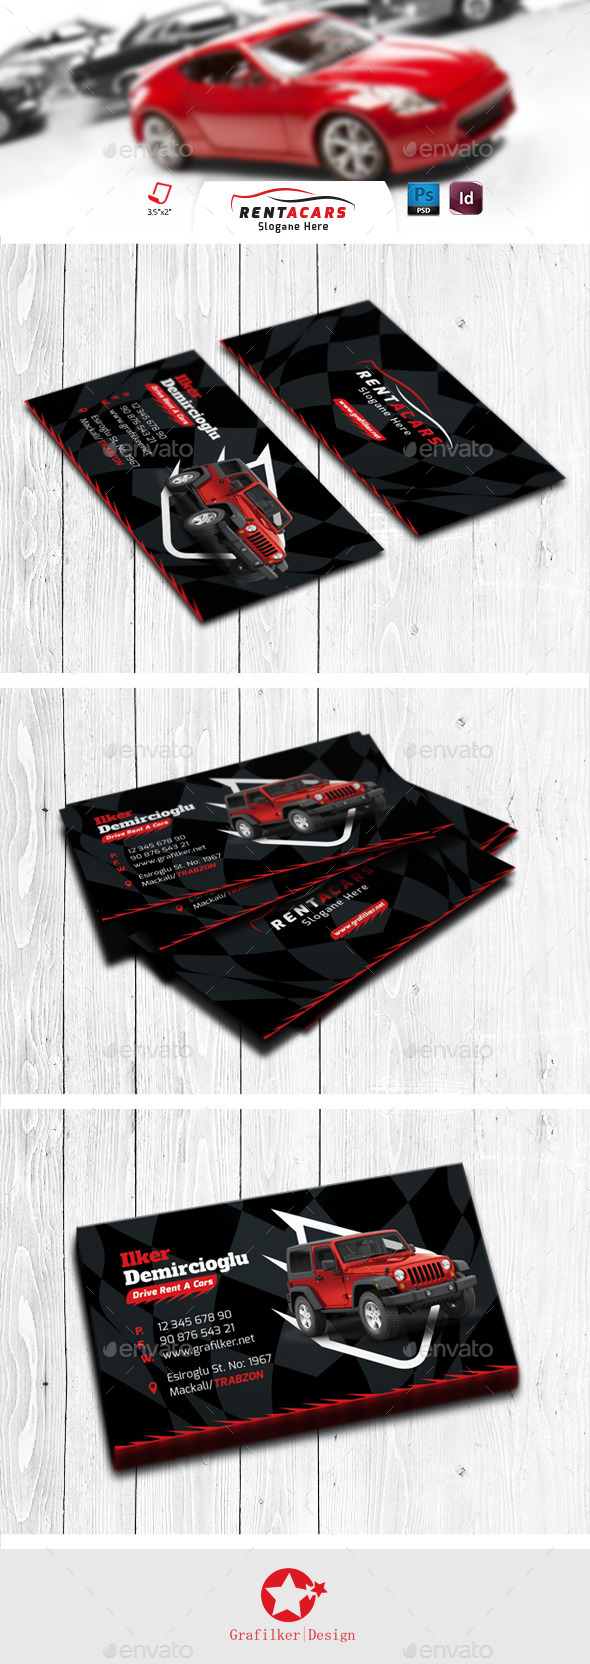 Rent A Car Business Card Templates - Creative Business Cards